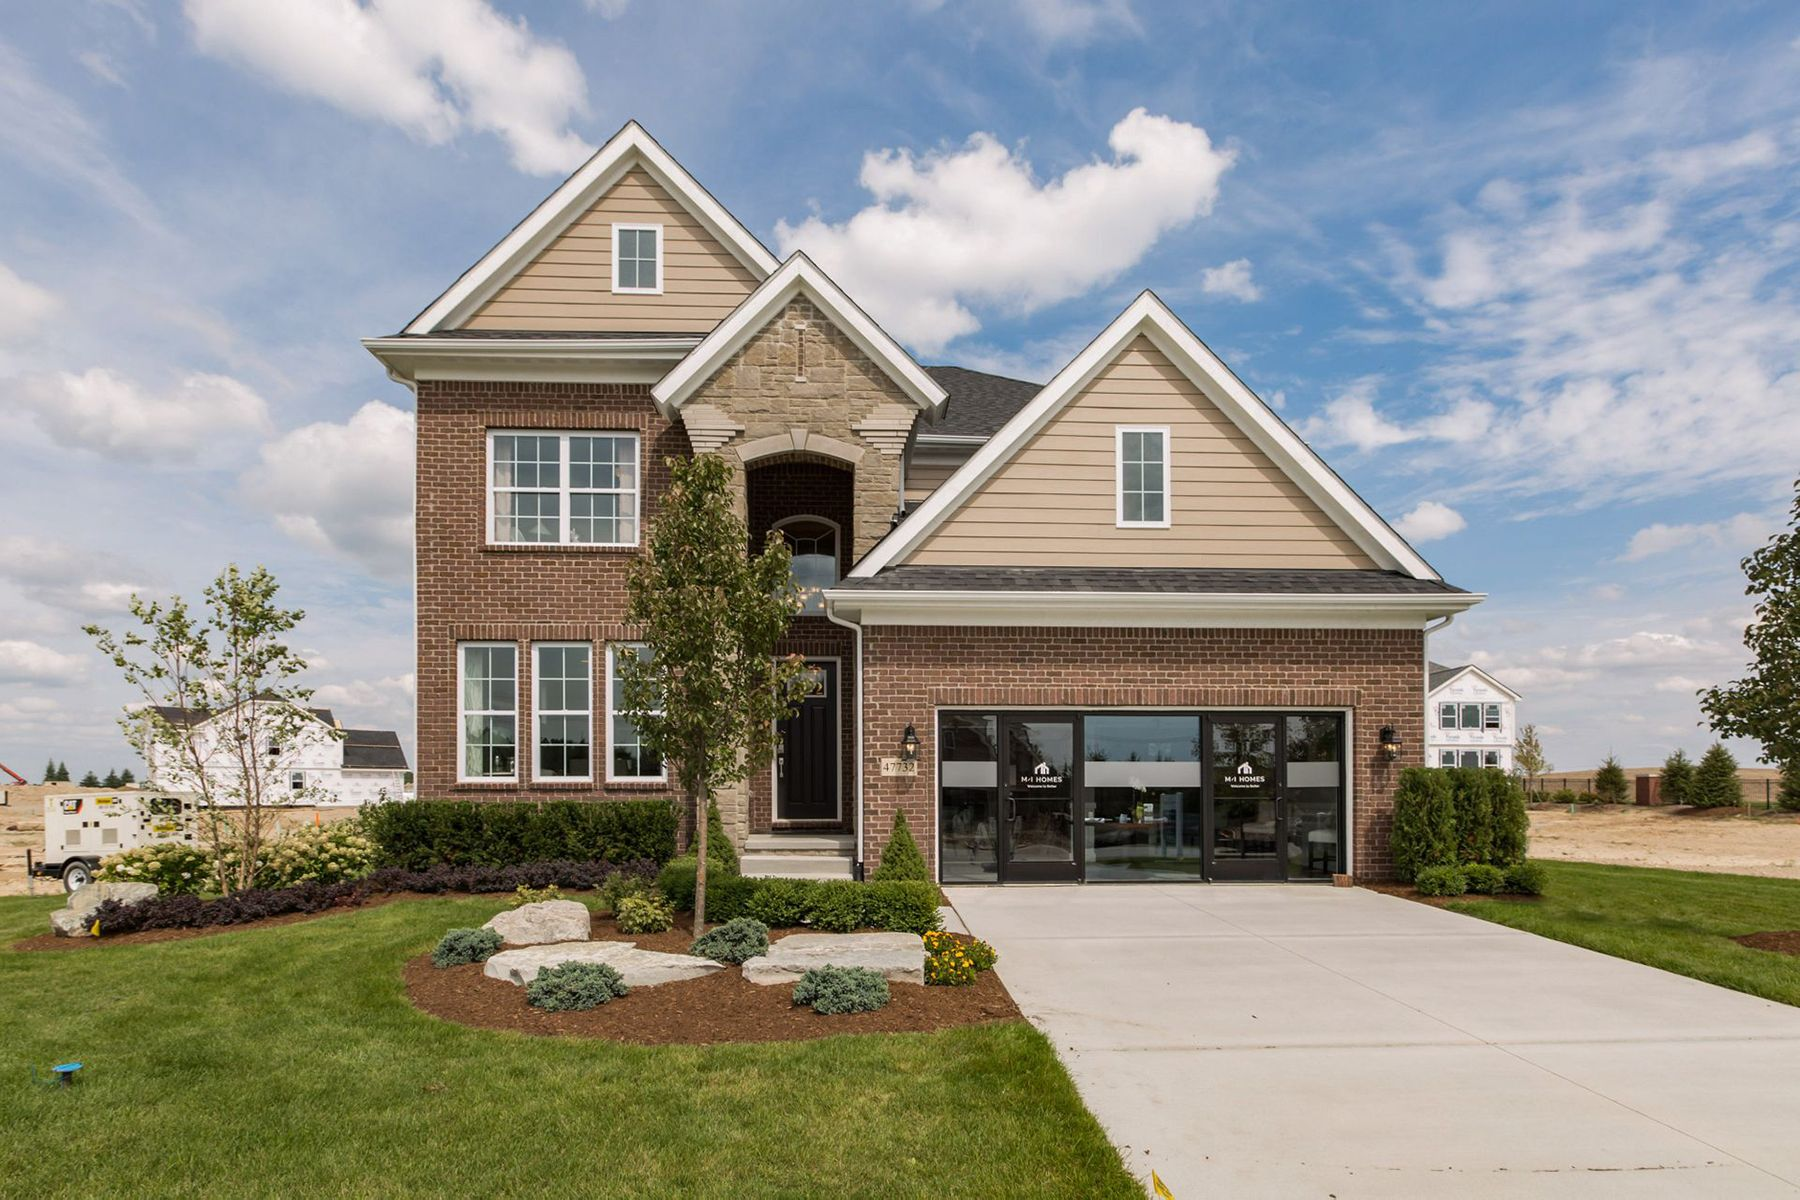 New Construction Homes & Plans in Northville, MI | 1,467 Homes ...